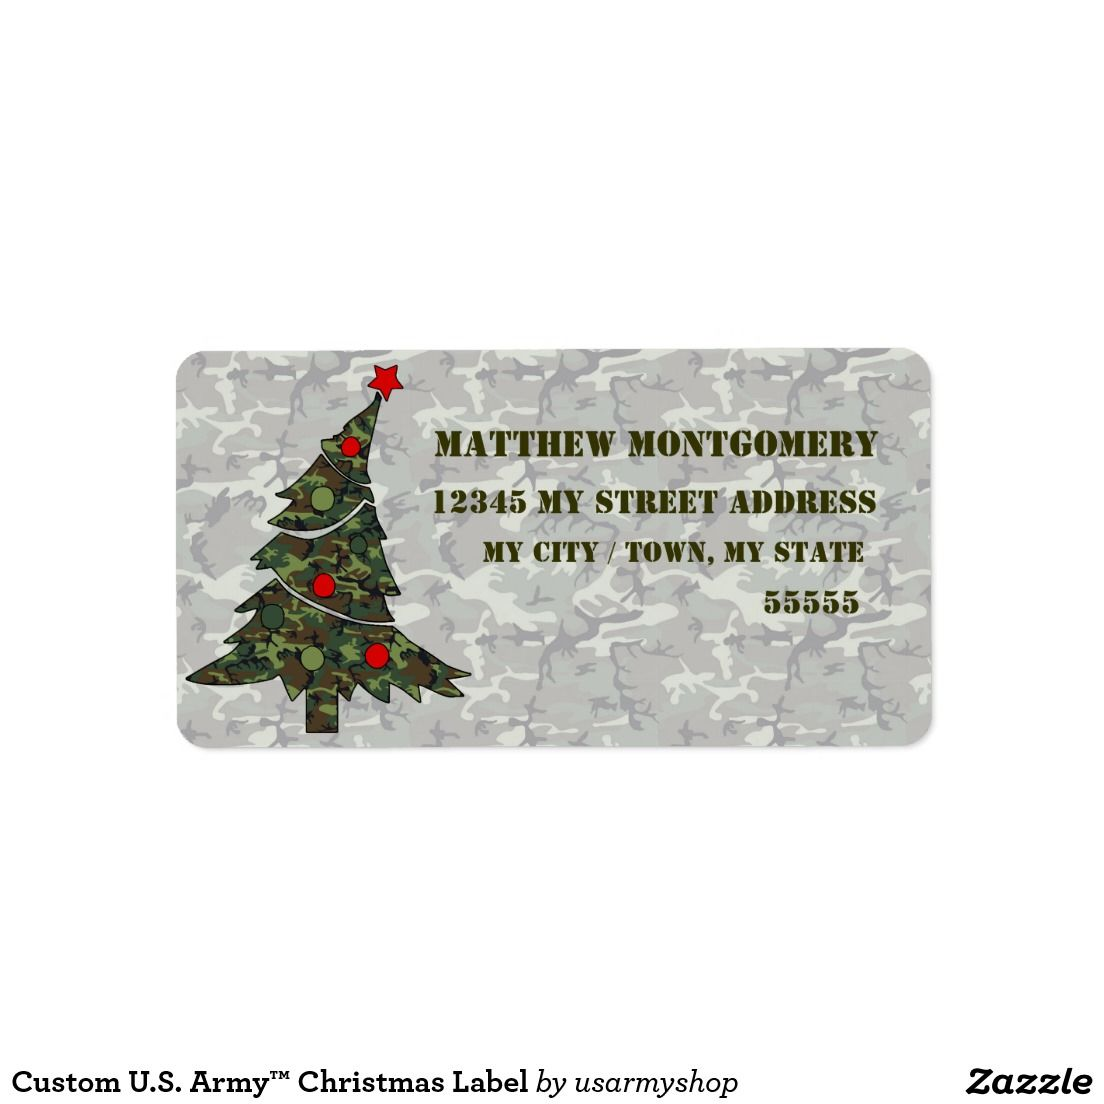 Custom U.S. Army™ Christmas Label Address Label